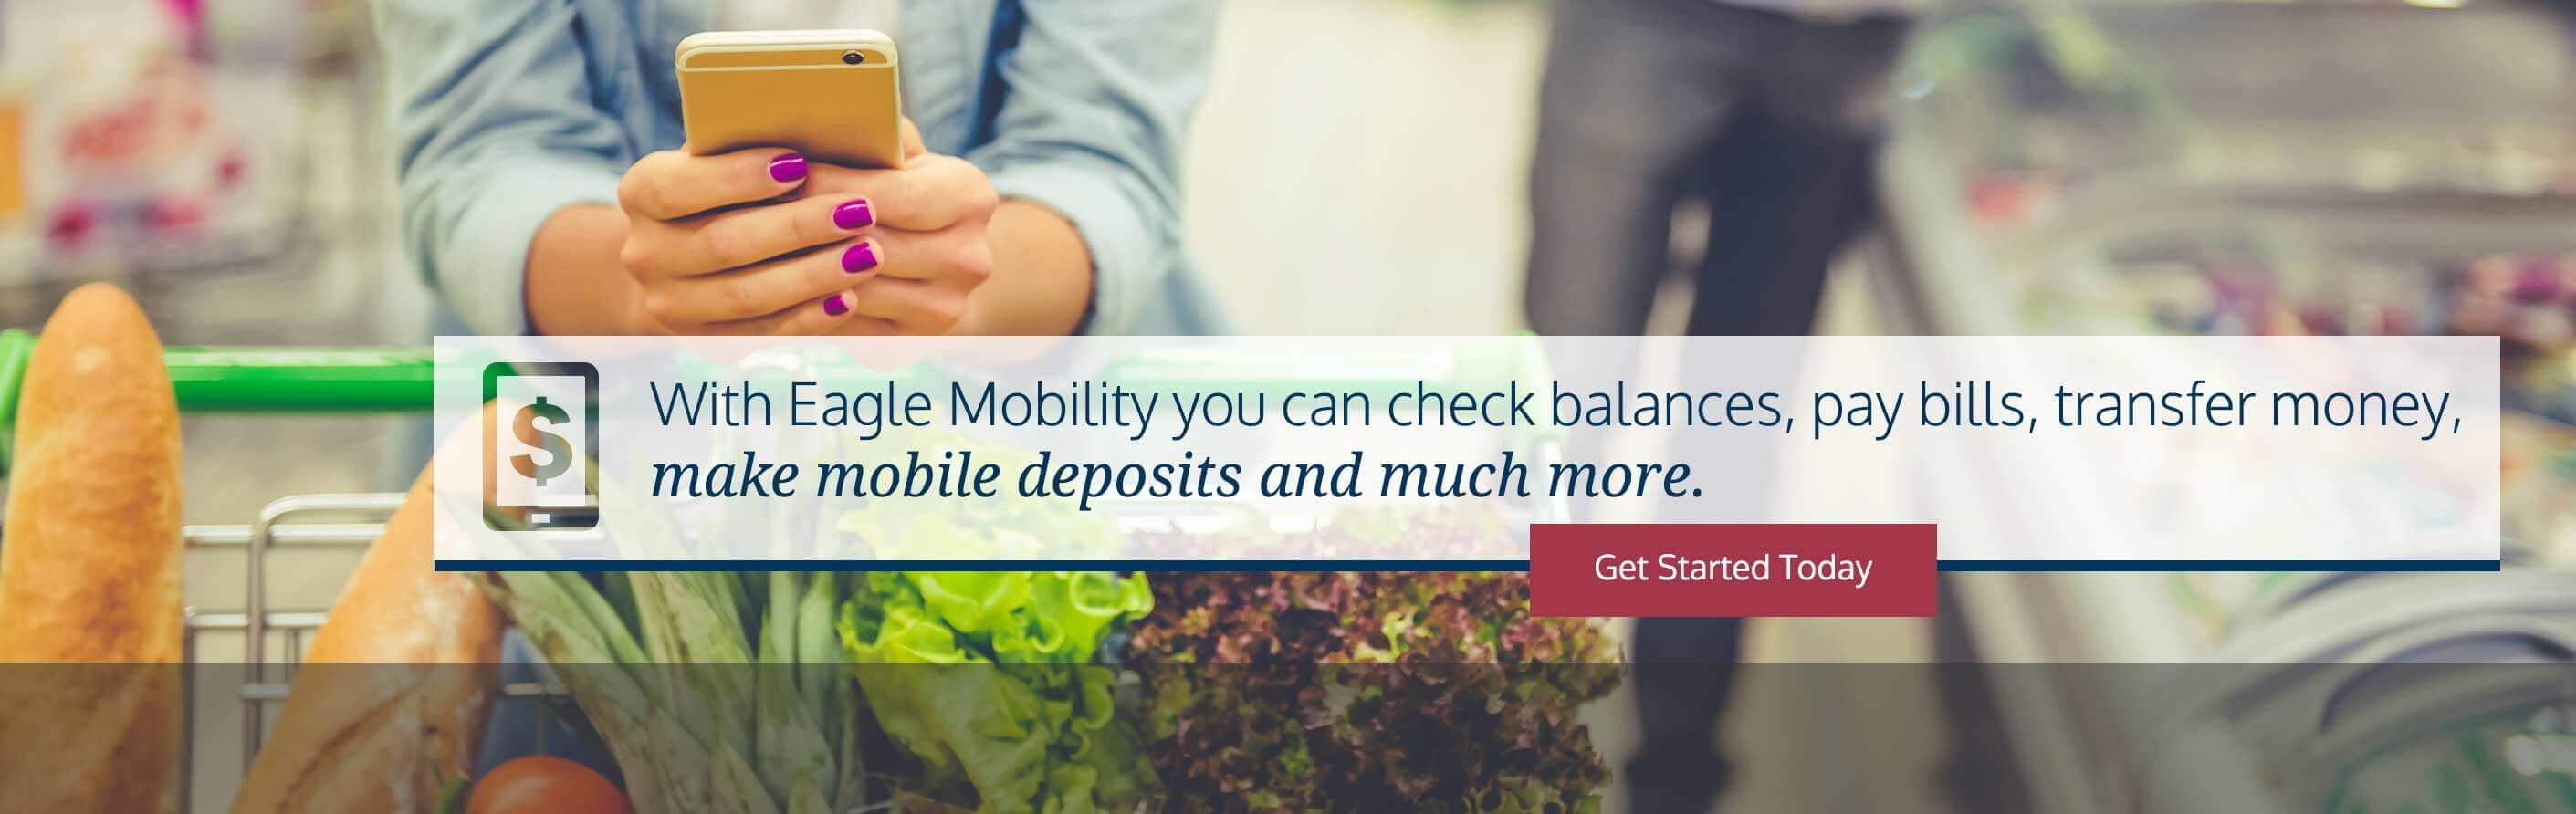 Nasa federal credit union security center -  Eagle Mobility Lets You Check Balances Pay Bills Transfer Money And Much More